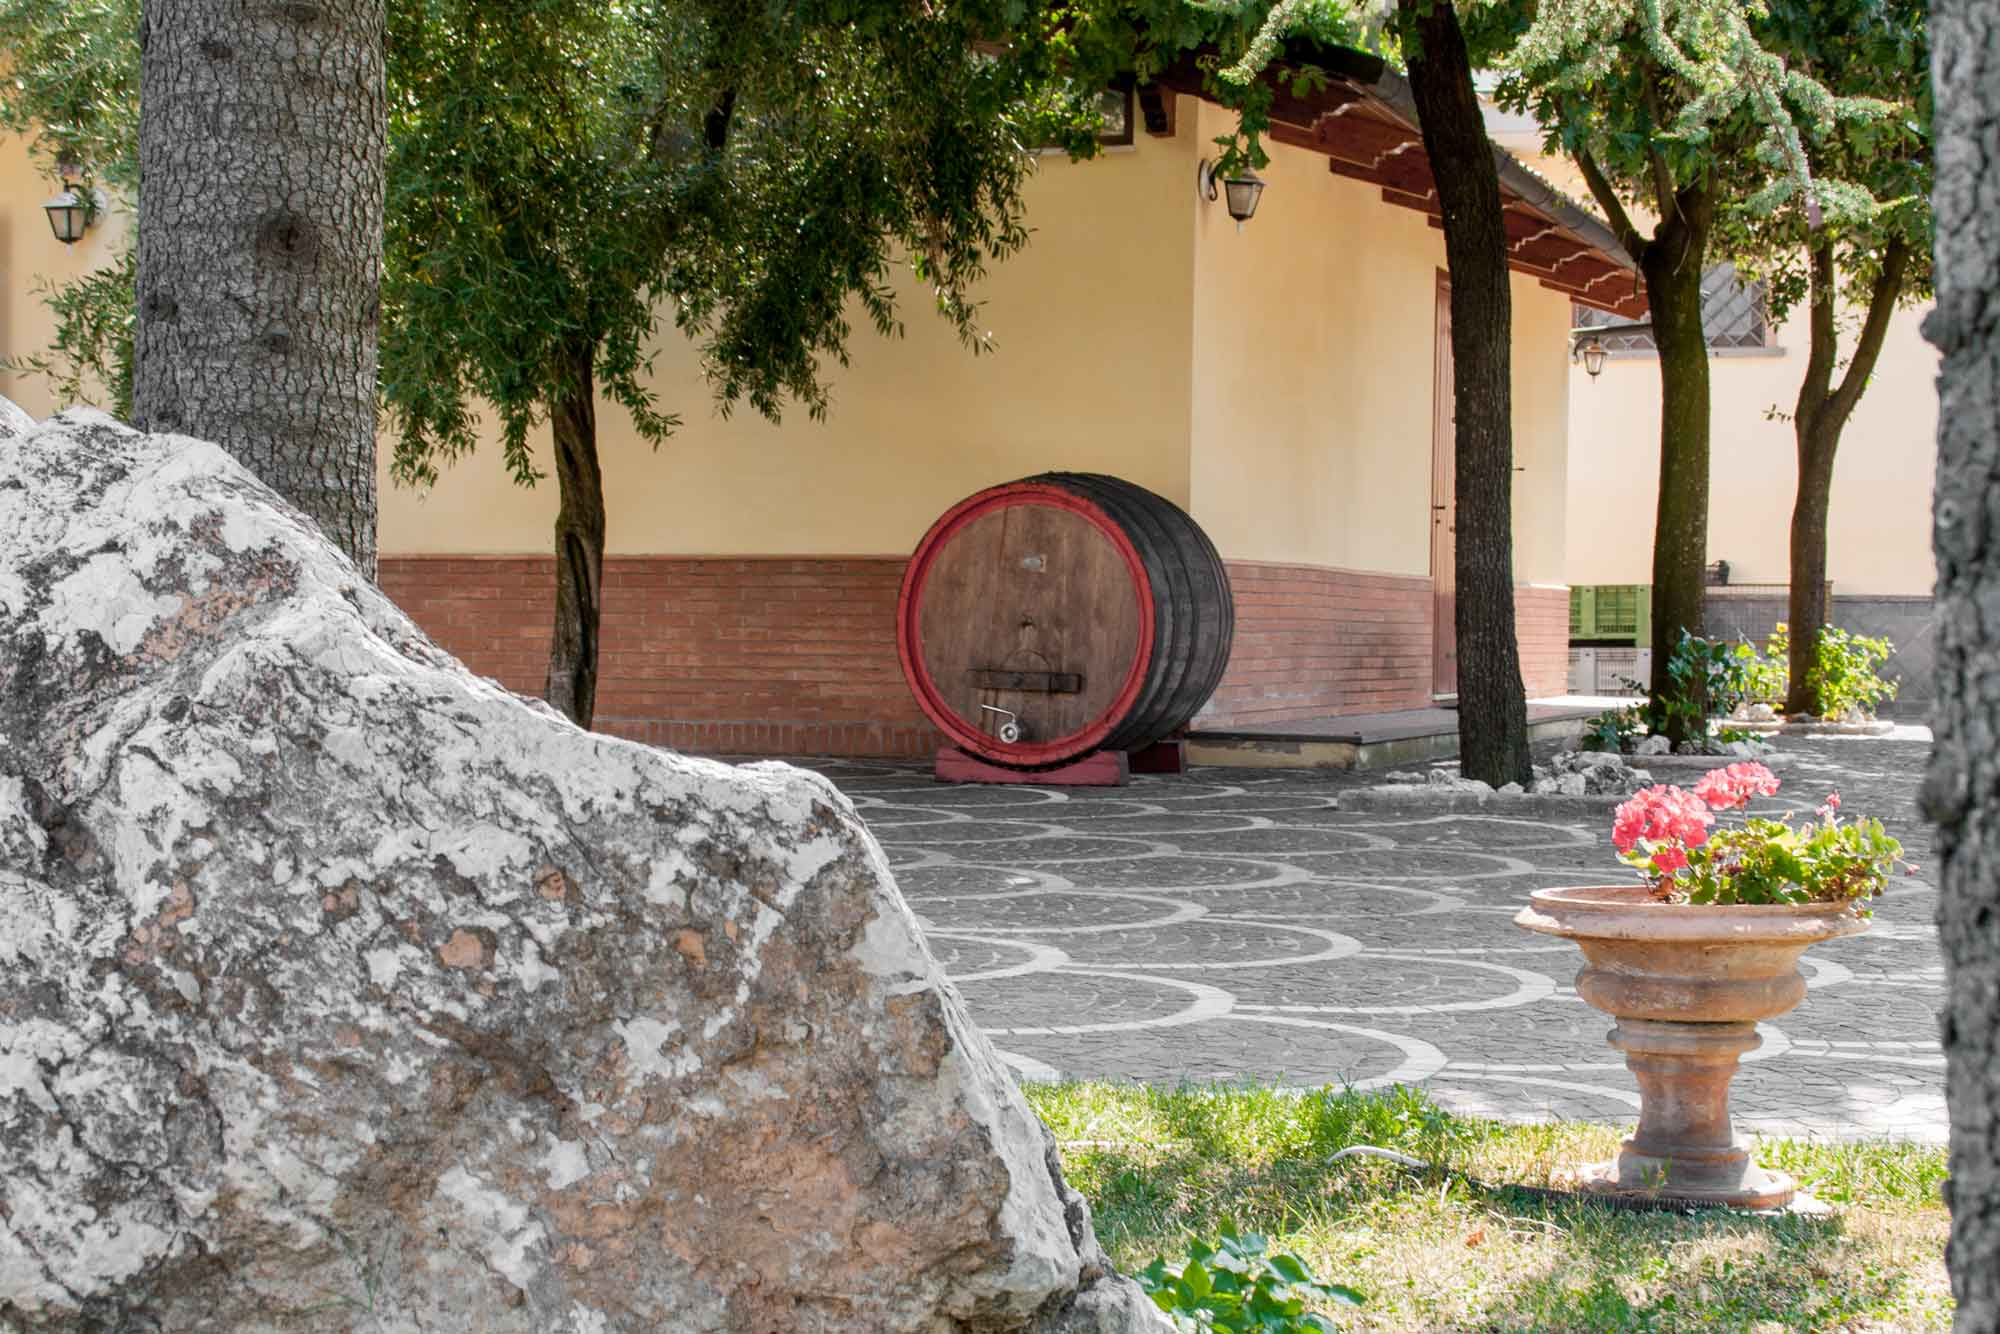 Barrel outside Cantine Astroni